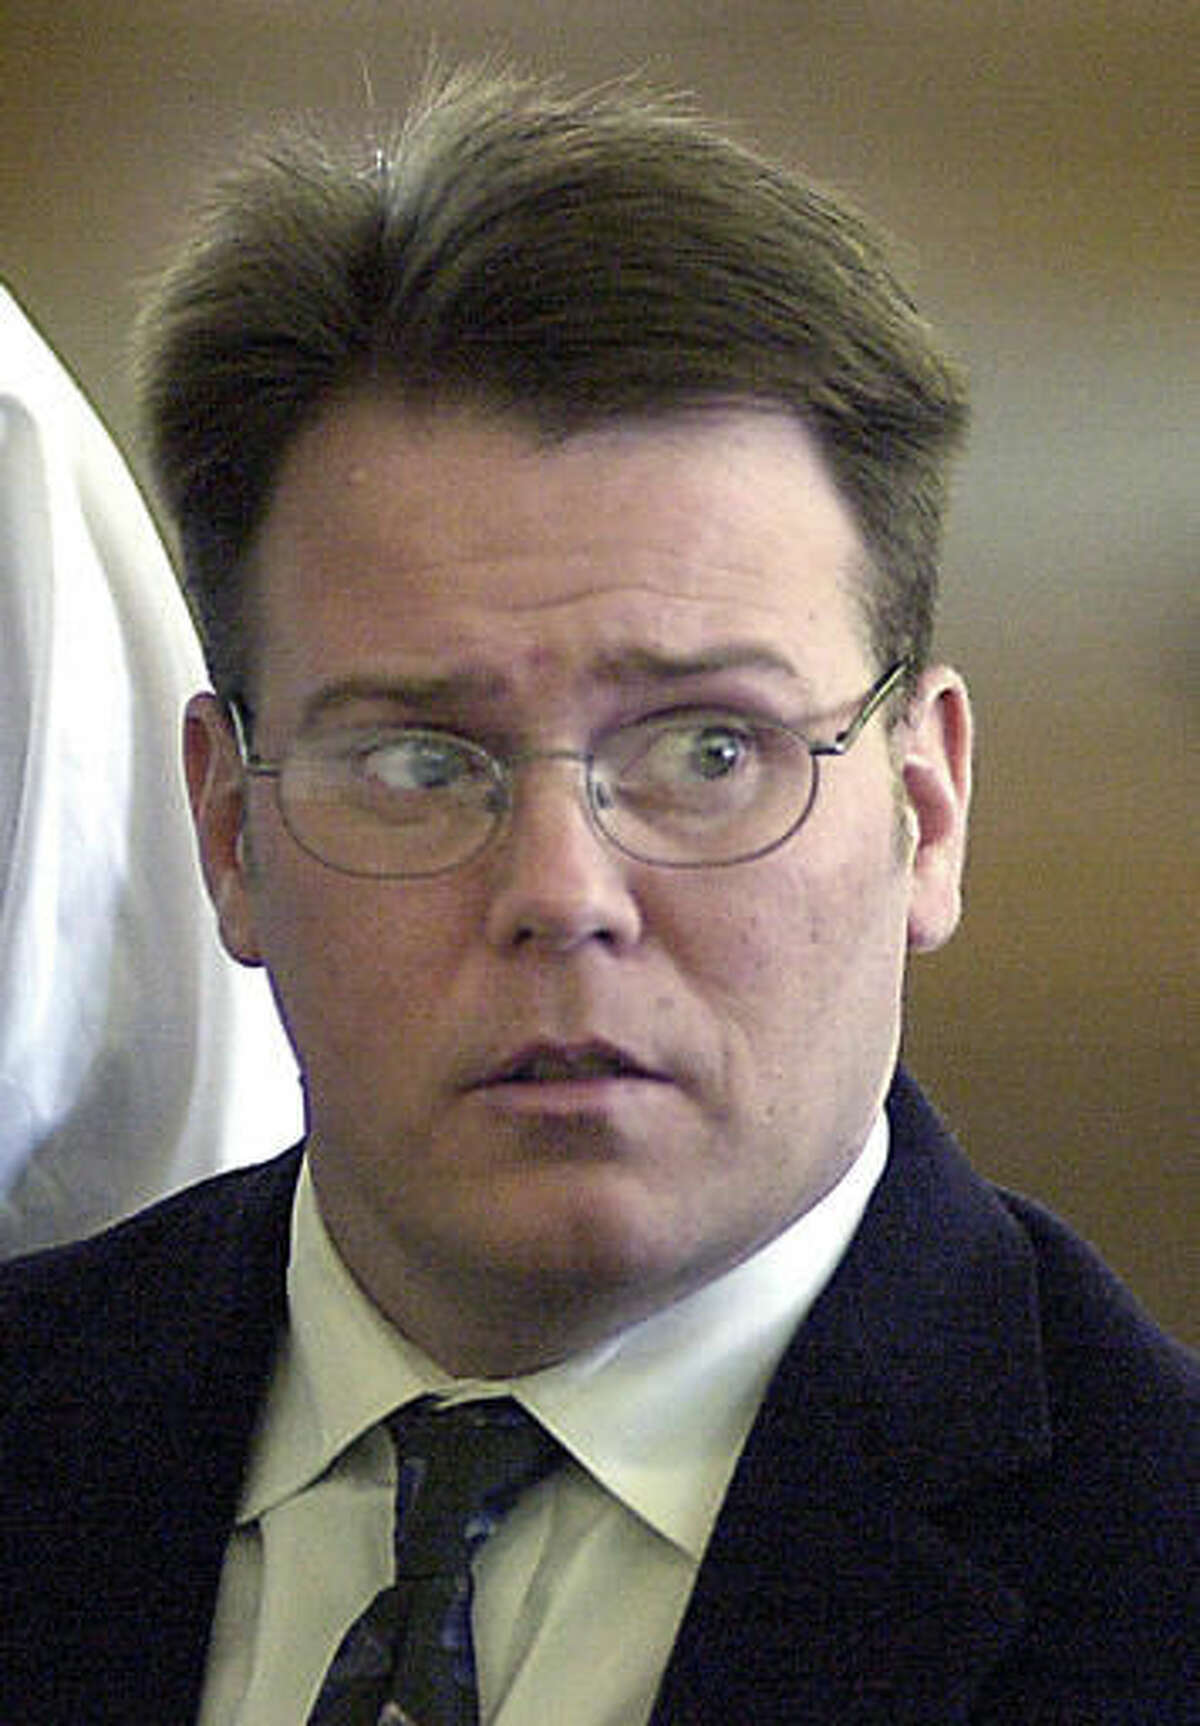 In this May, 7, 2001 photo, Daniel Holland sits at the defendants table at the start of his trial for murder in Norfolk Superior Court, in Dedham, Mass. Holland was convicted and imprisoned for the homicide of his wife Elizabeth. The couple's 8-year-old son found his mother's body and years later won a groundbreaking legal battle to terminate his father's parental rights. Holland is appealing a judge's refusal to grant him a new trial. (Greg Derr/The Quincy Patriot Ledger via AP)